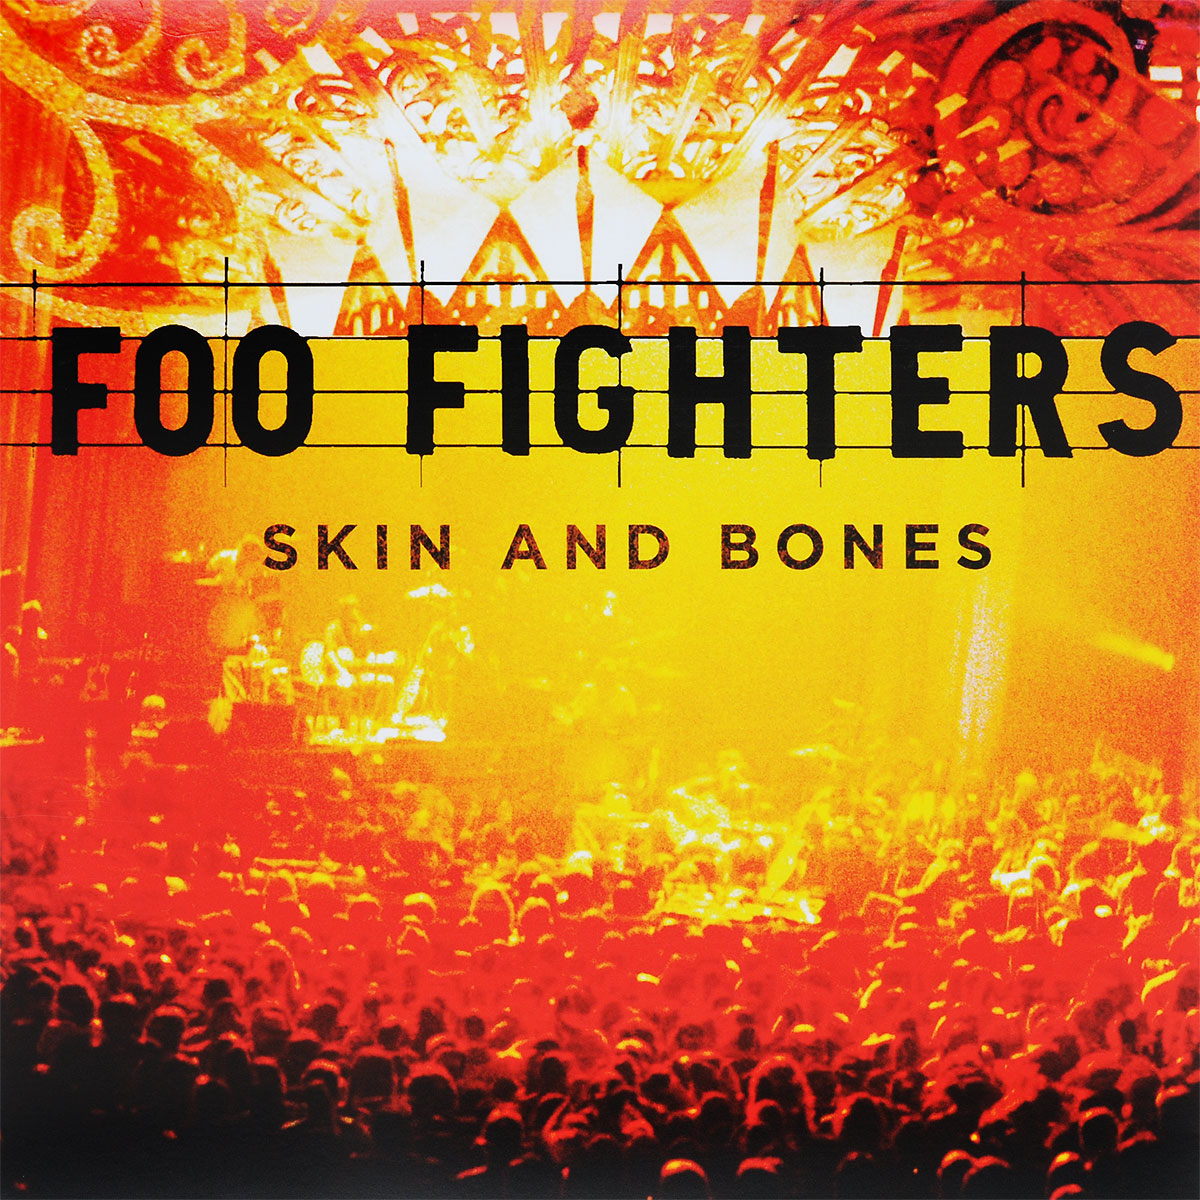 Foo Fighters Foo Fighters. Skin & Bones (2 LP) пальто quelle rick cardona by heine 68947